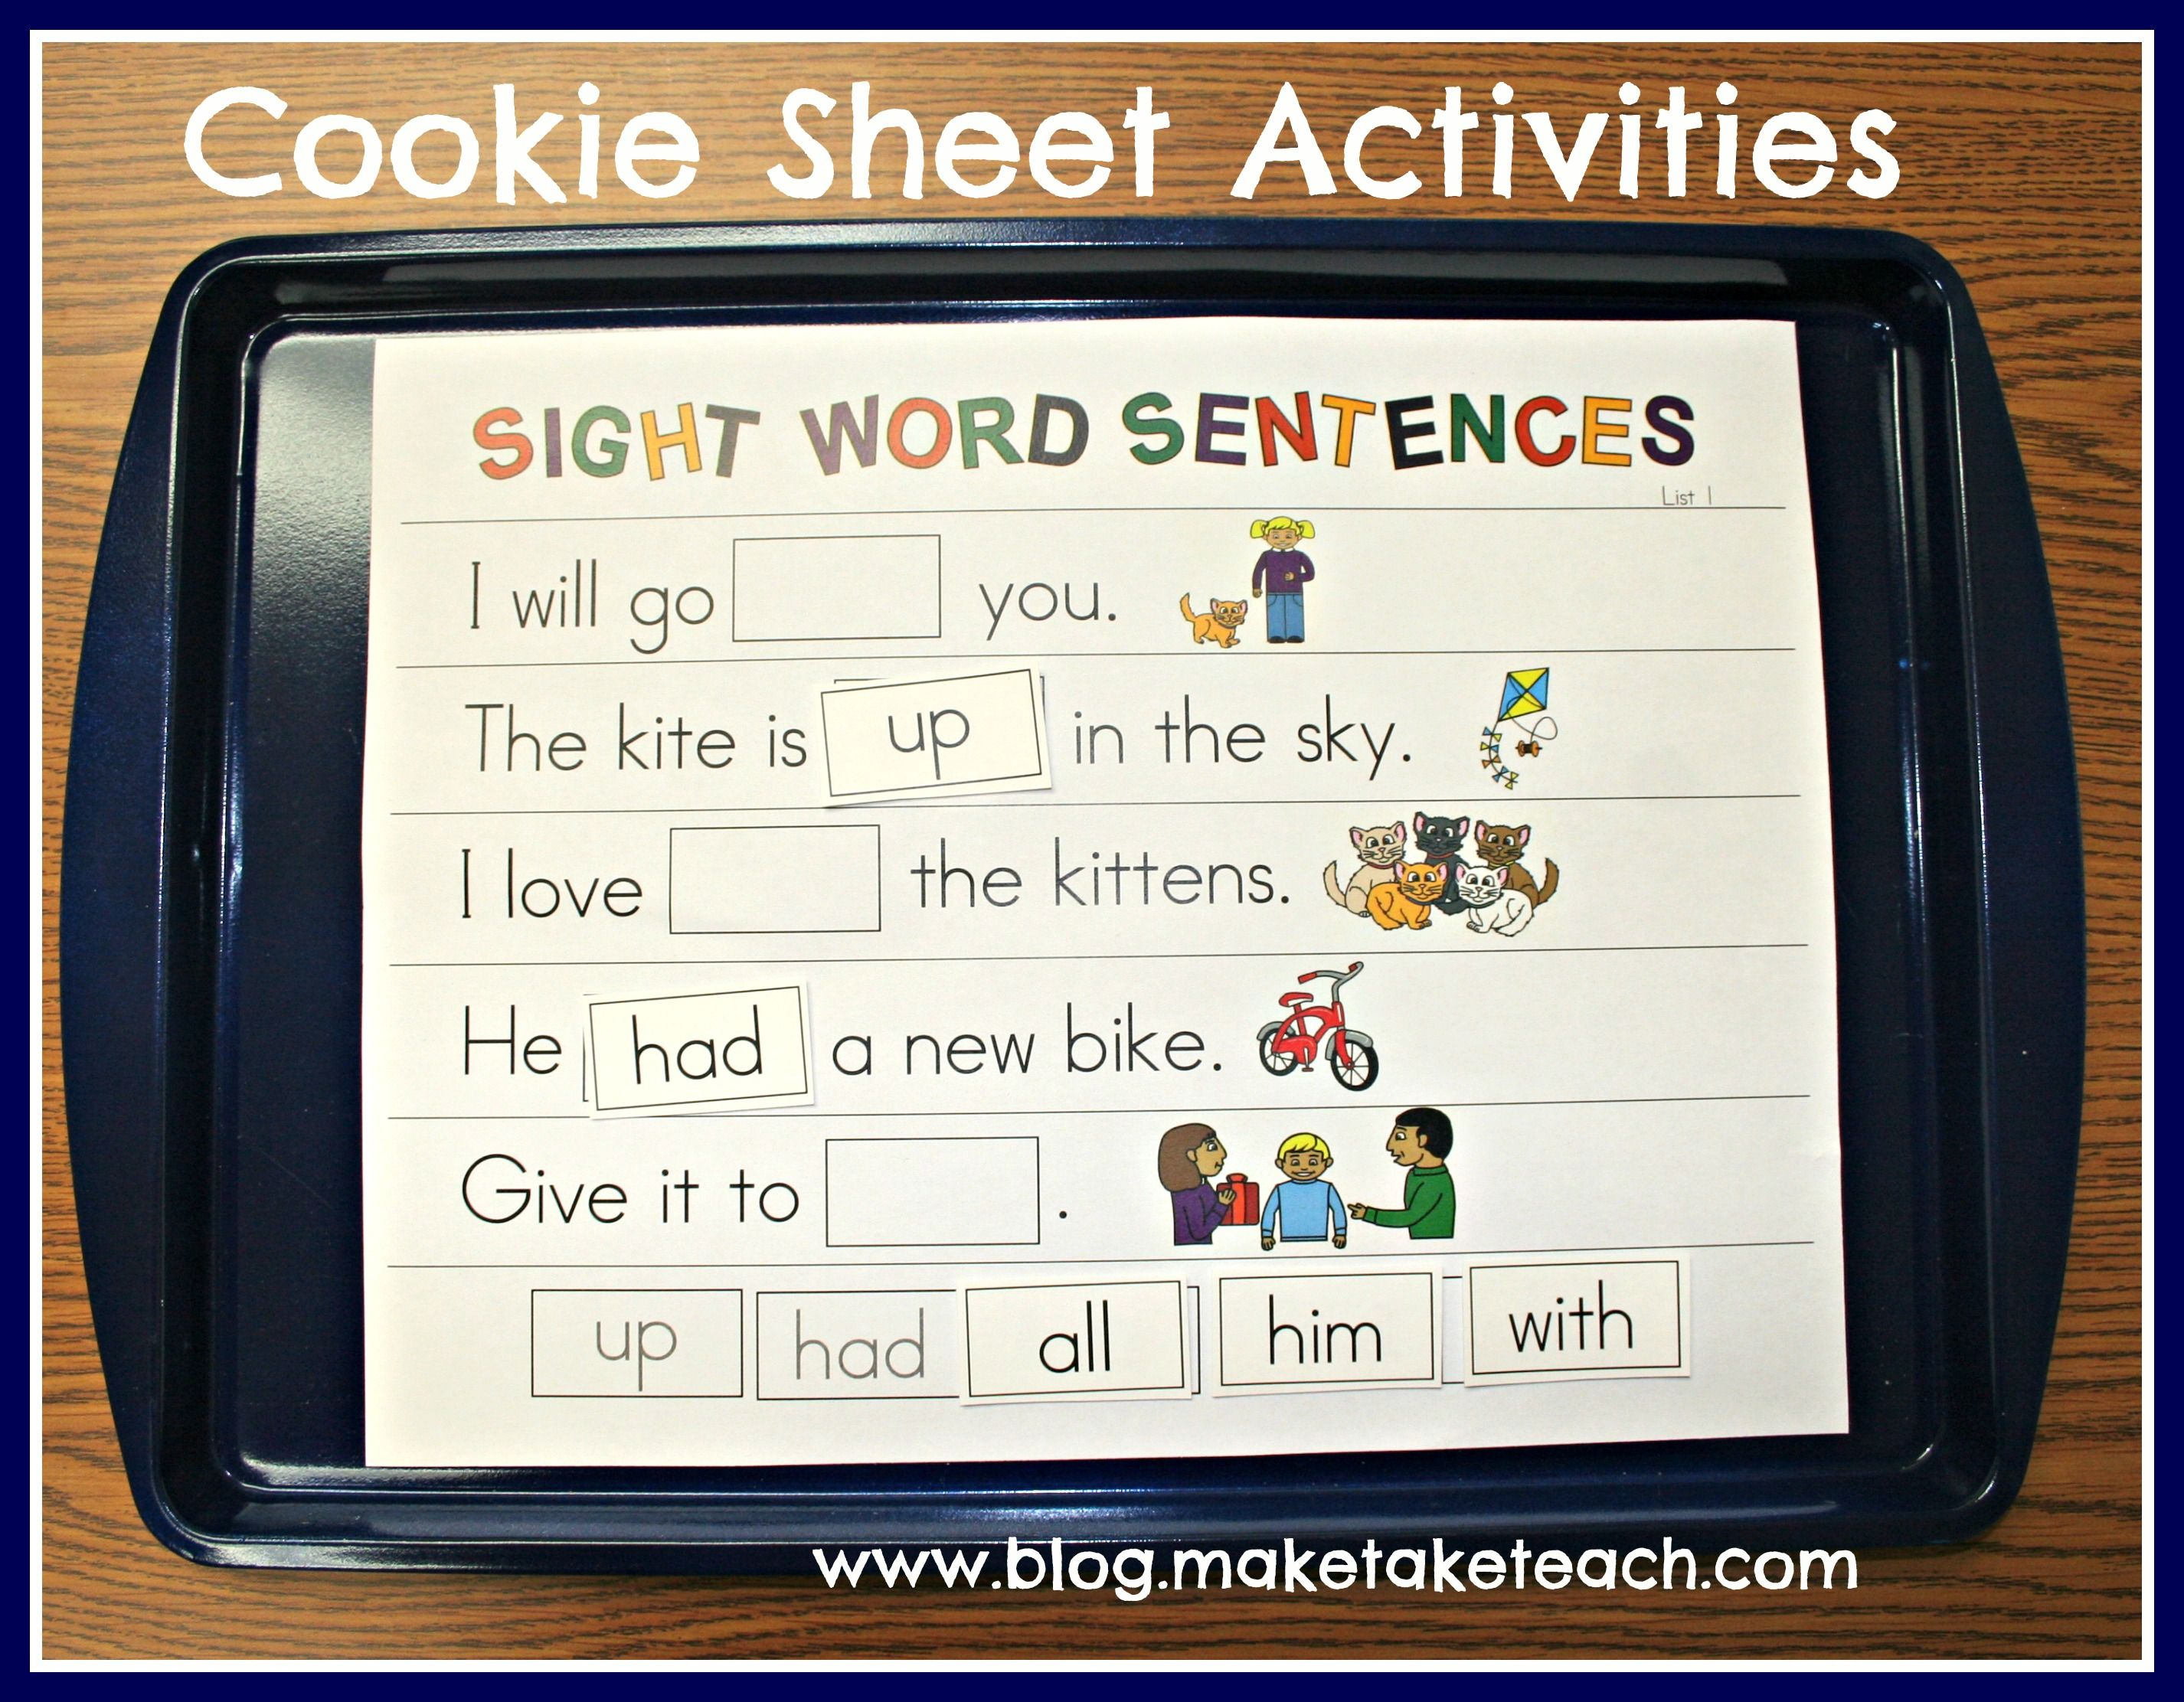 Cookie Sheet Challenge Volume 3 Sight Words